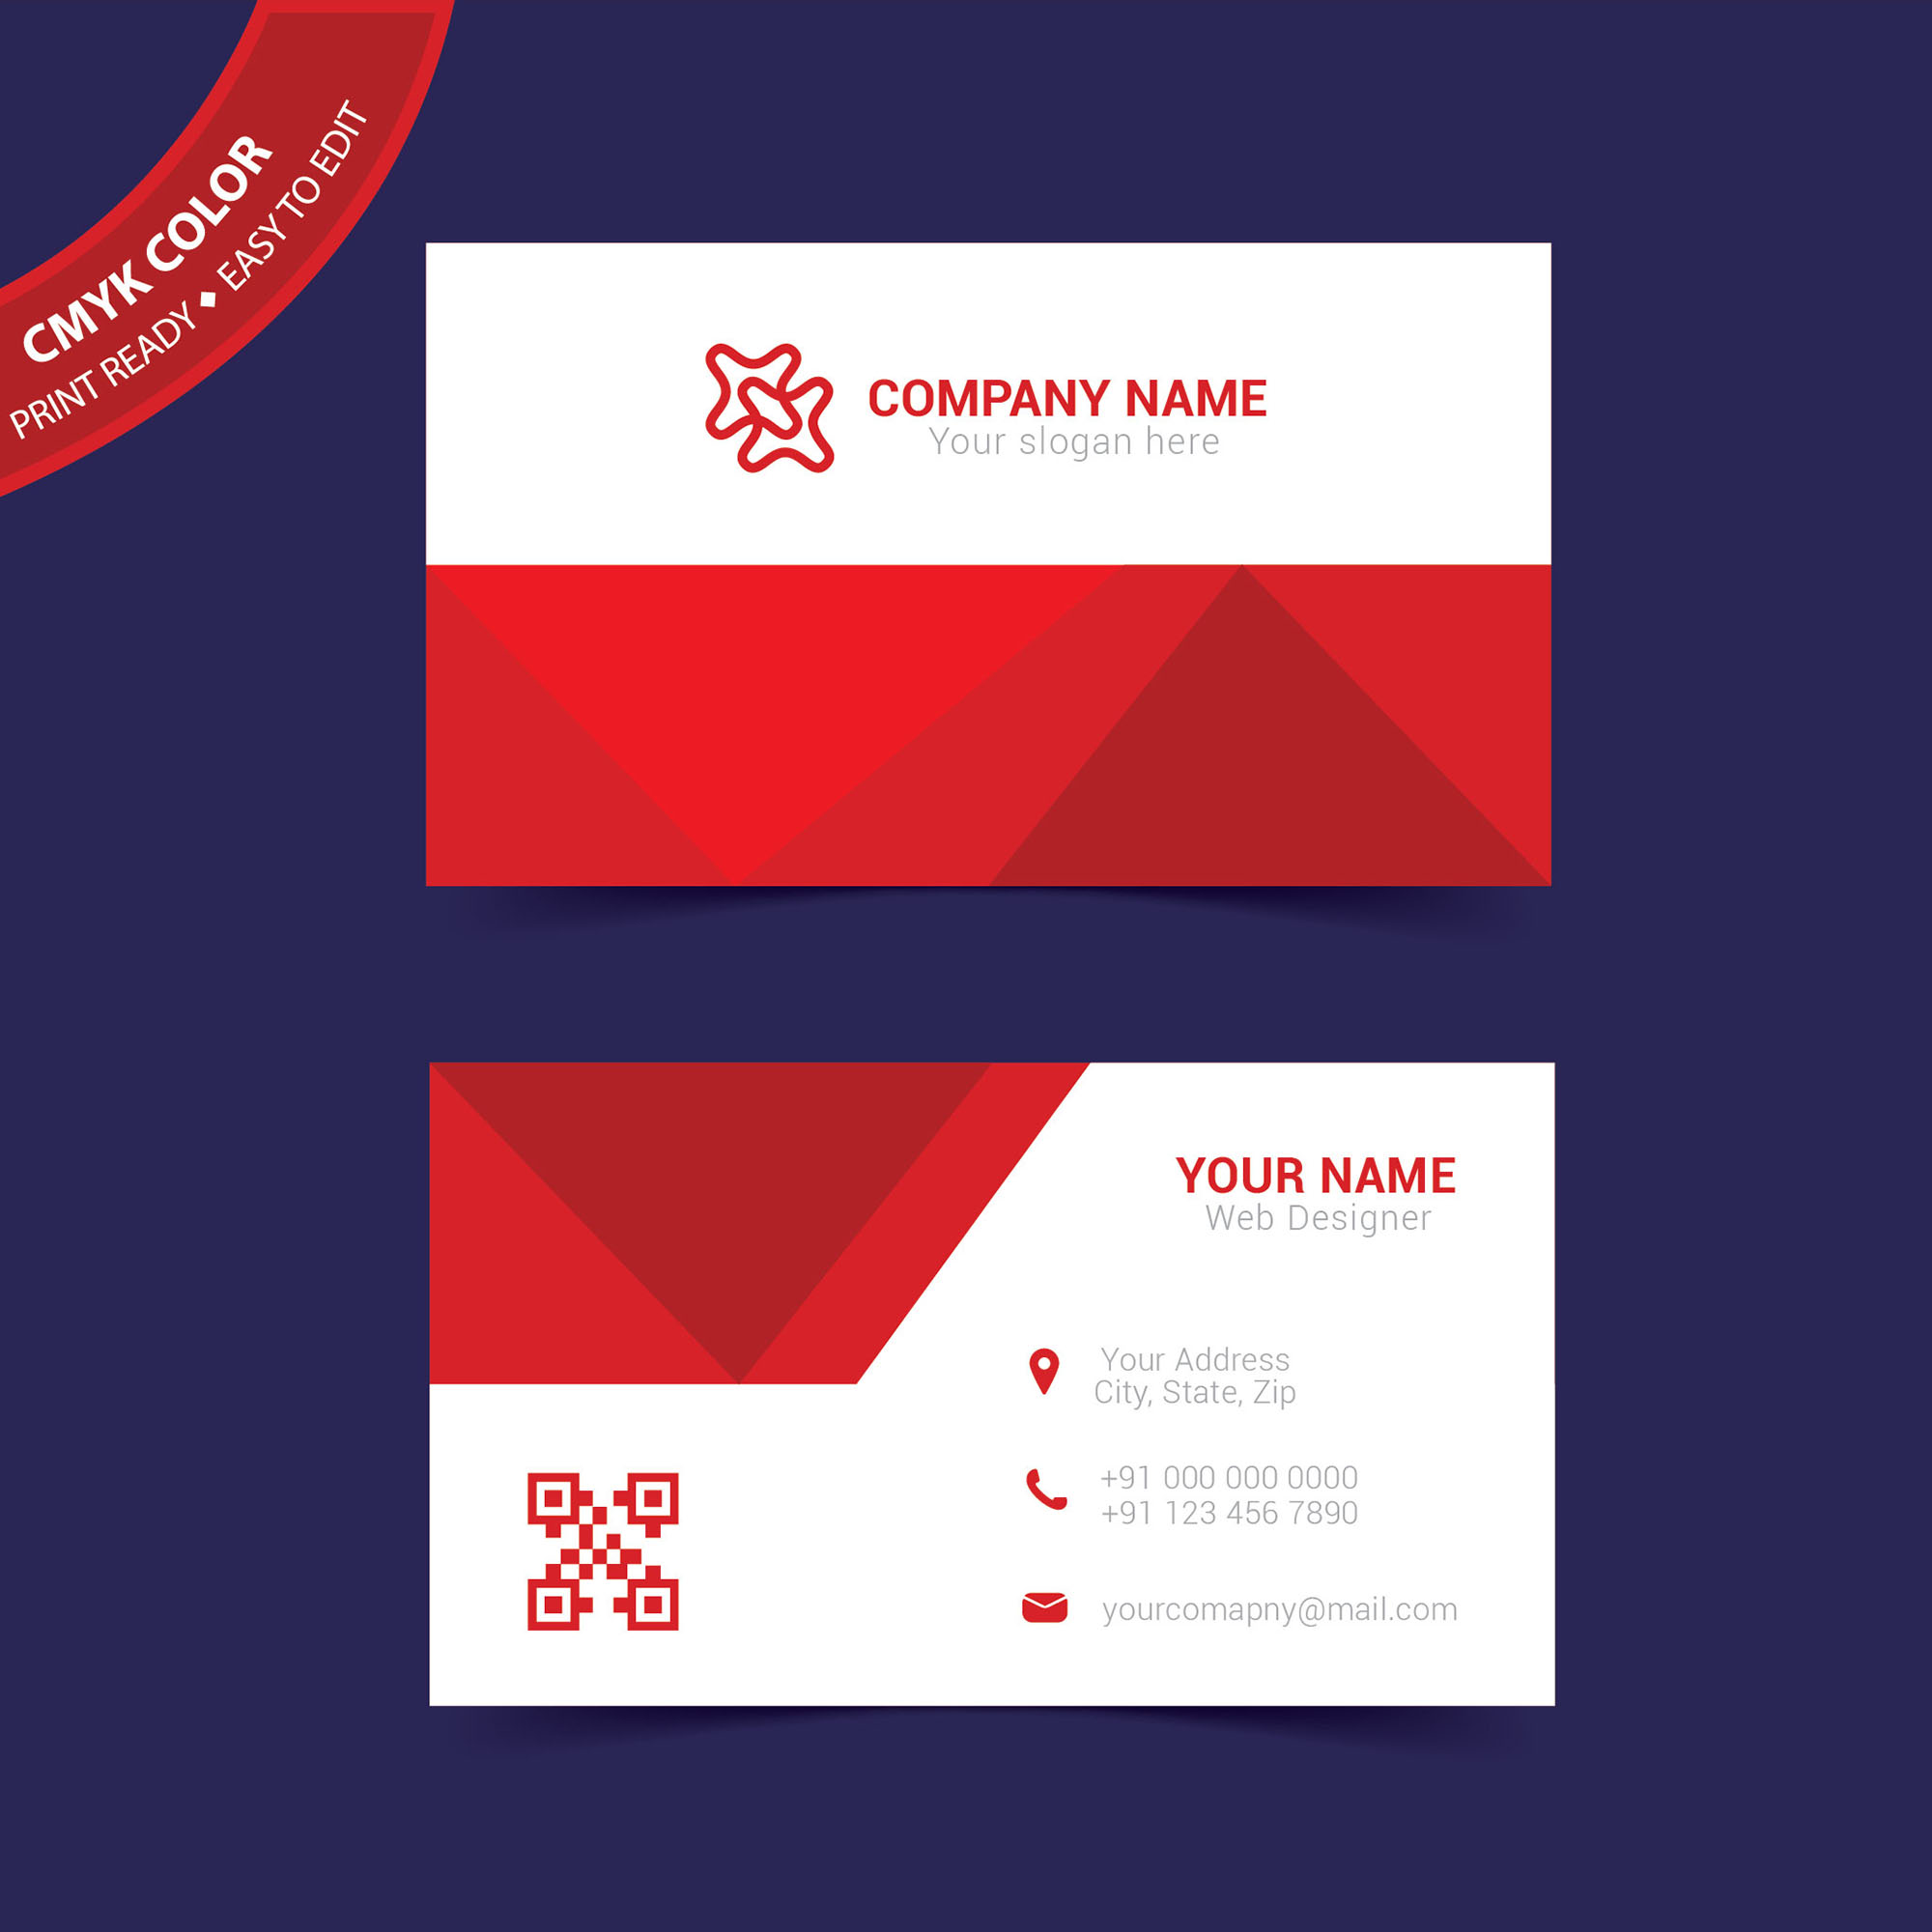 Business Card Print Template Free Download Wisxicom - Free business card layout template